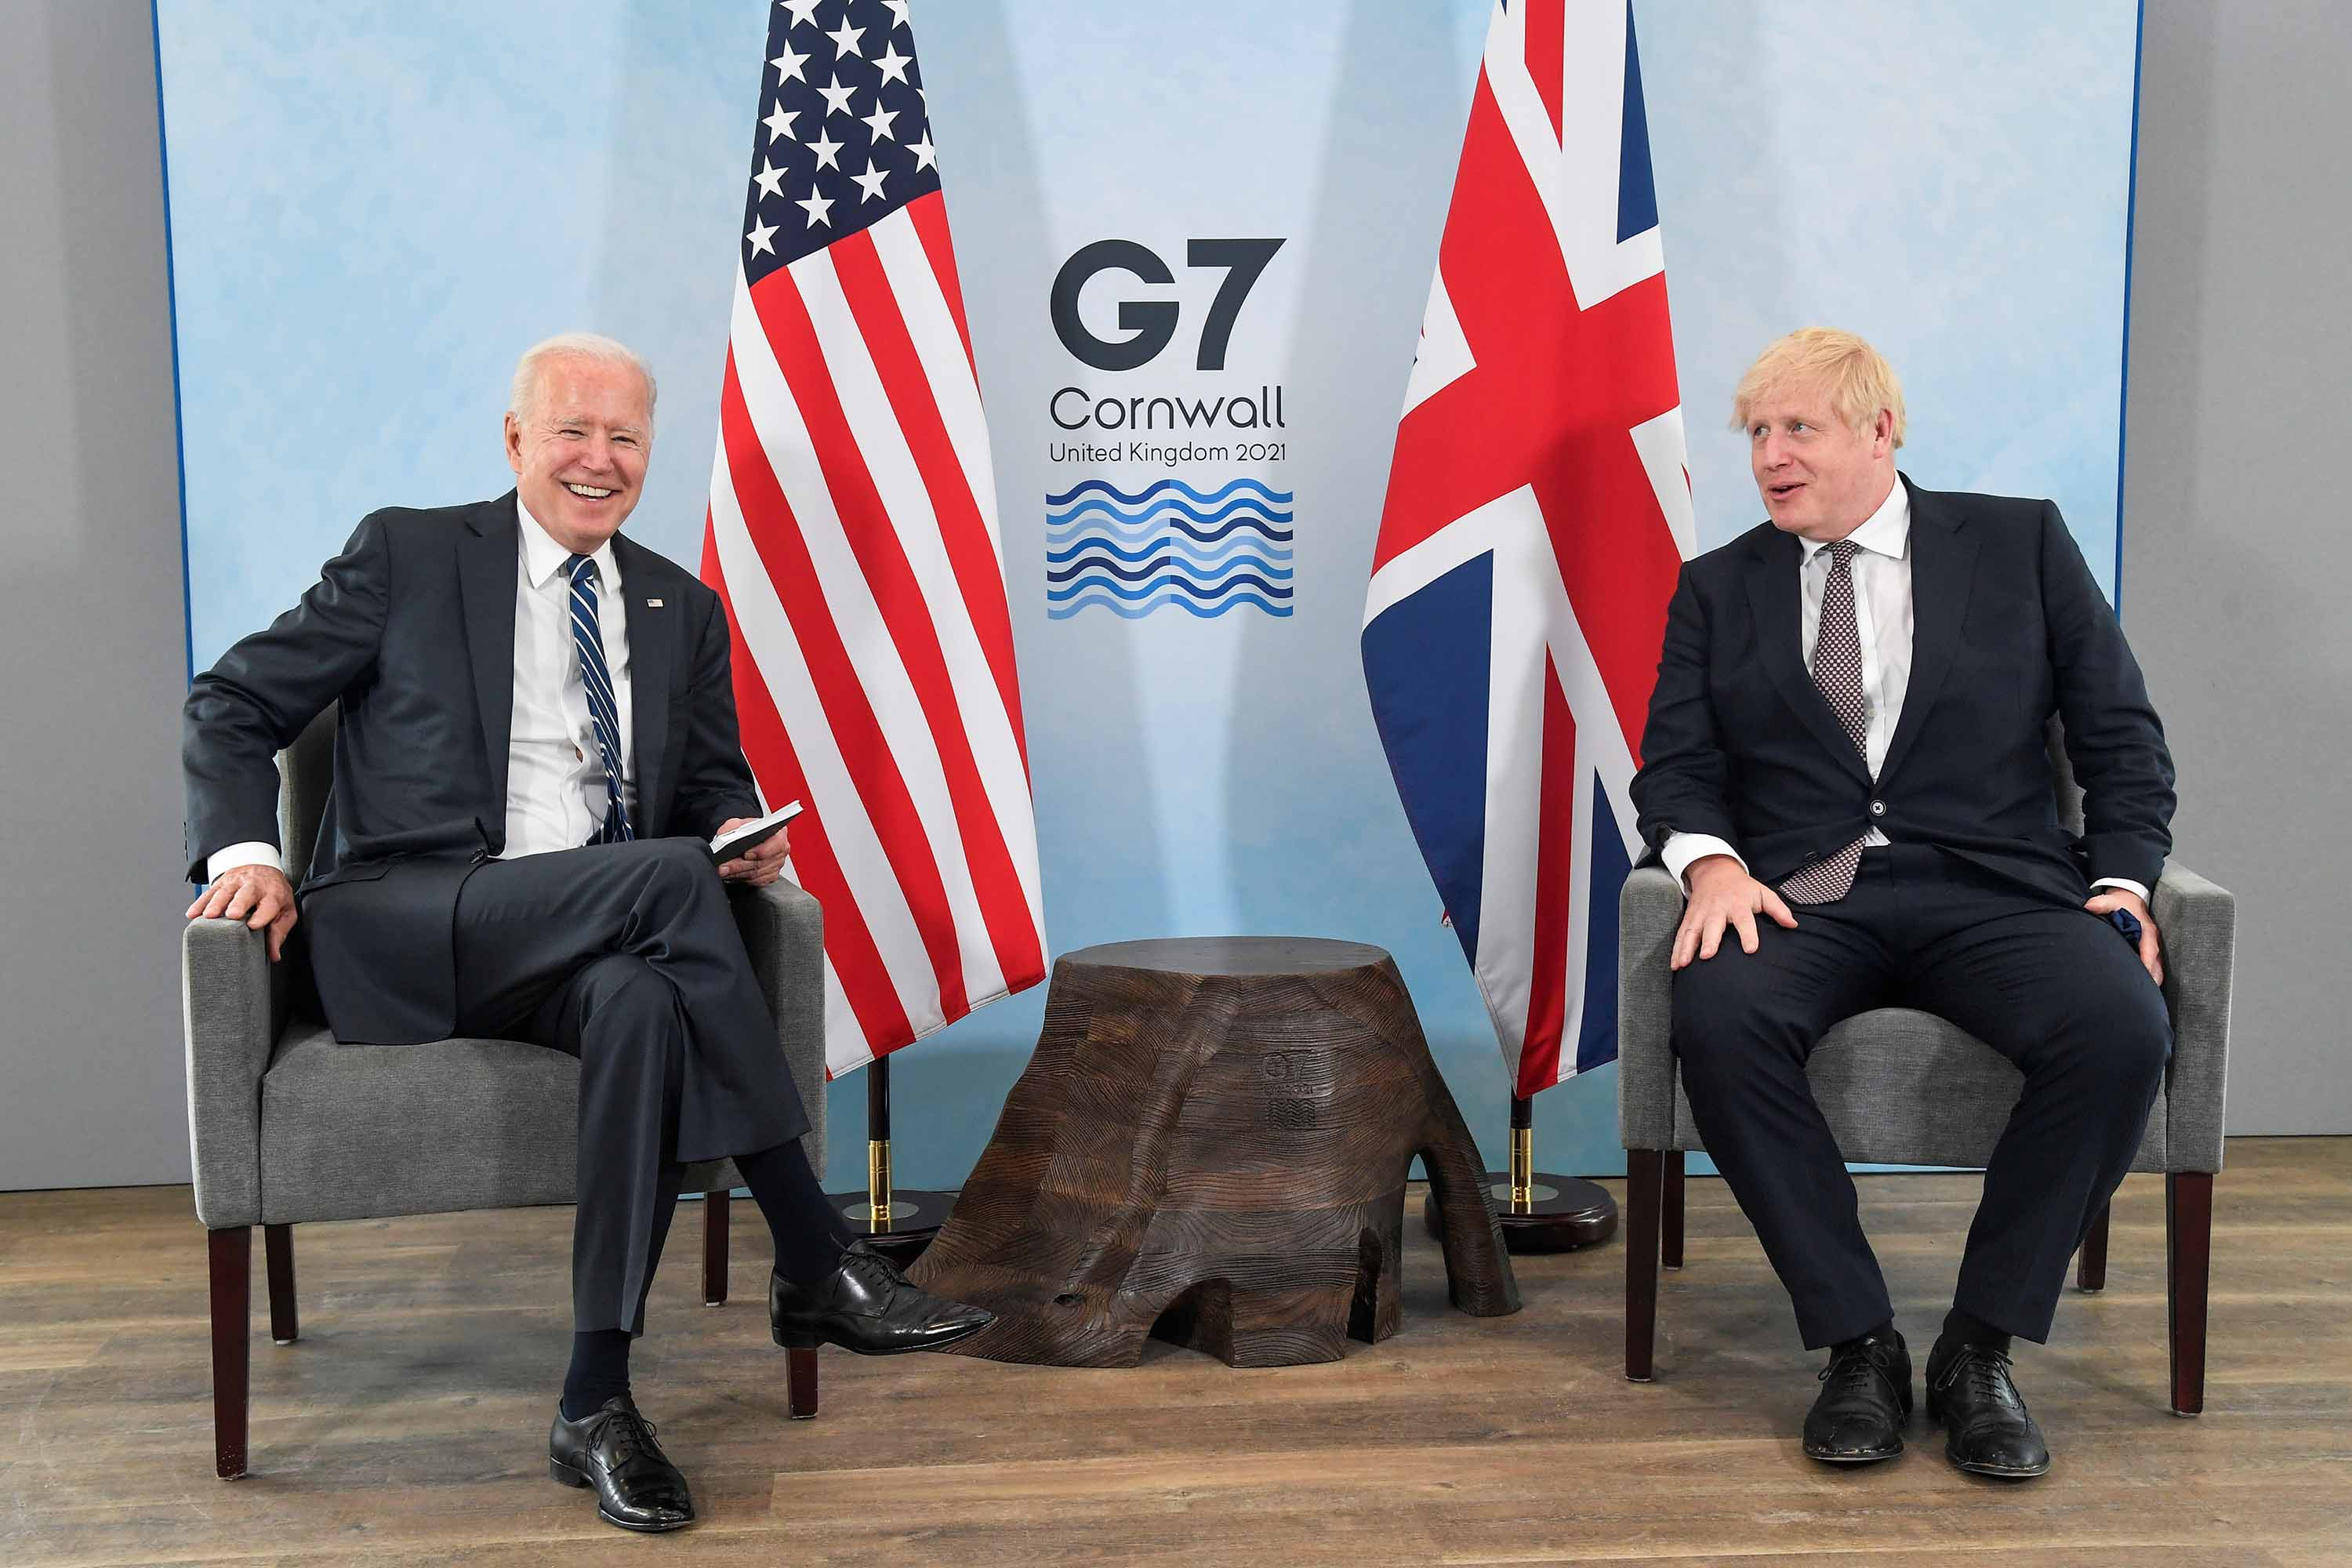 Climate, taxes and China: Investors are watching the G7